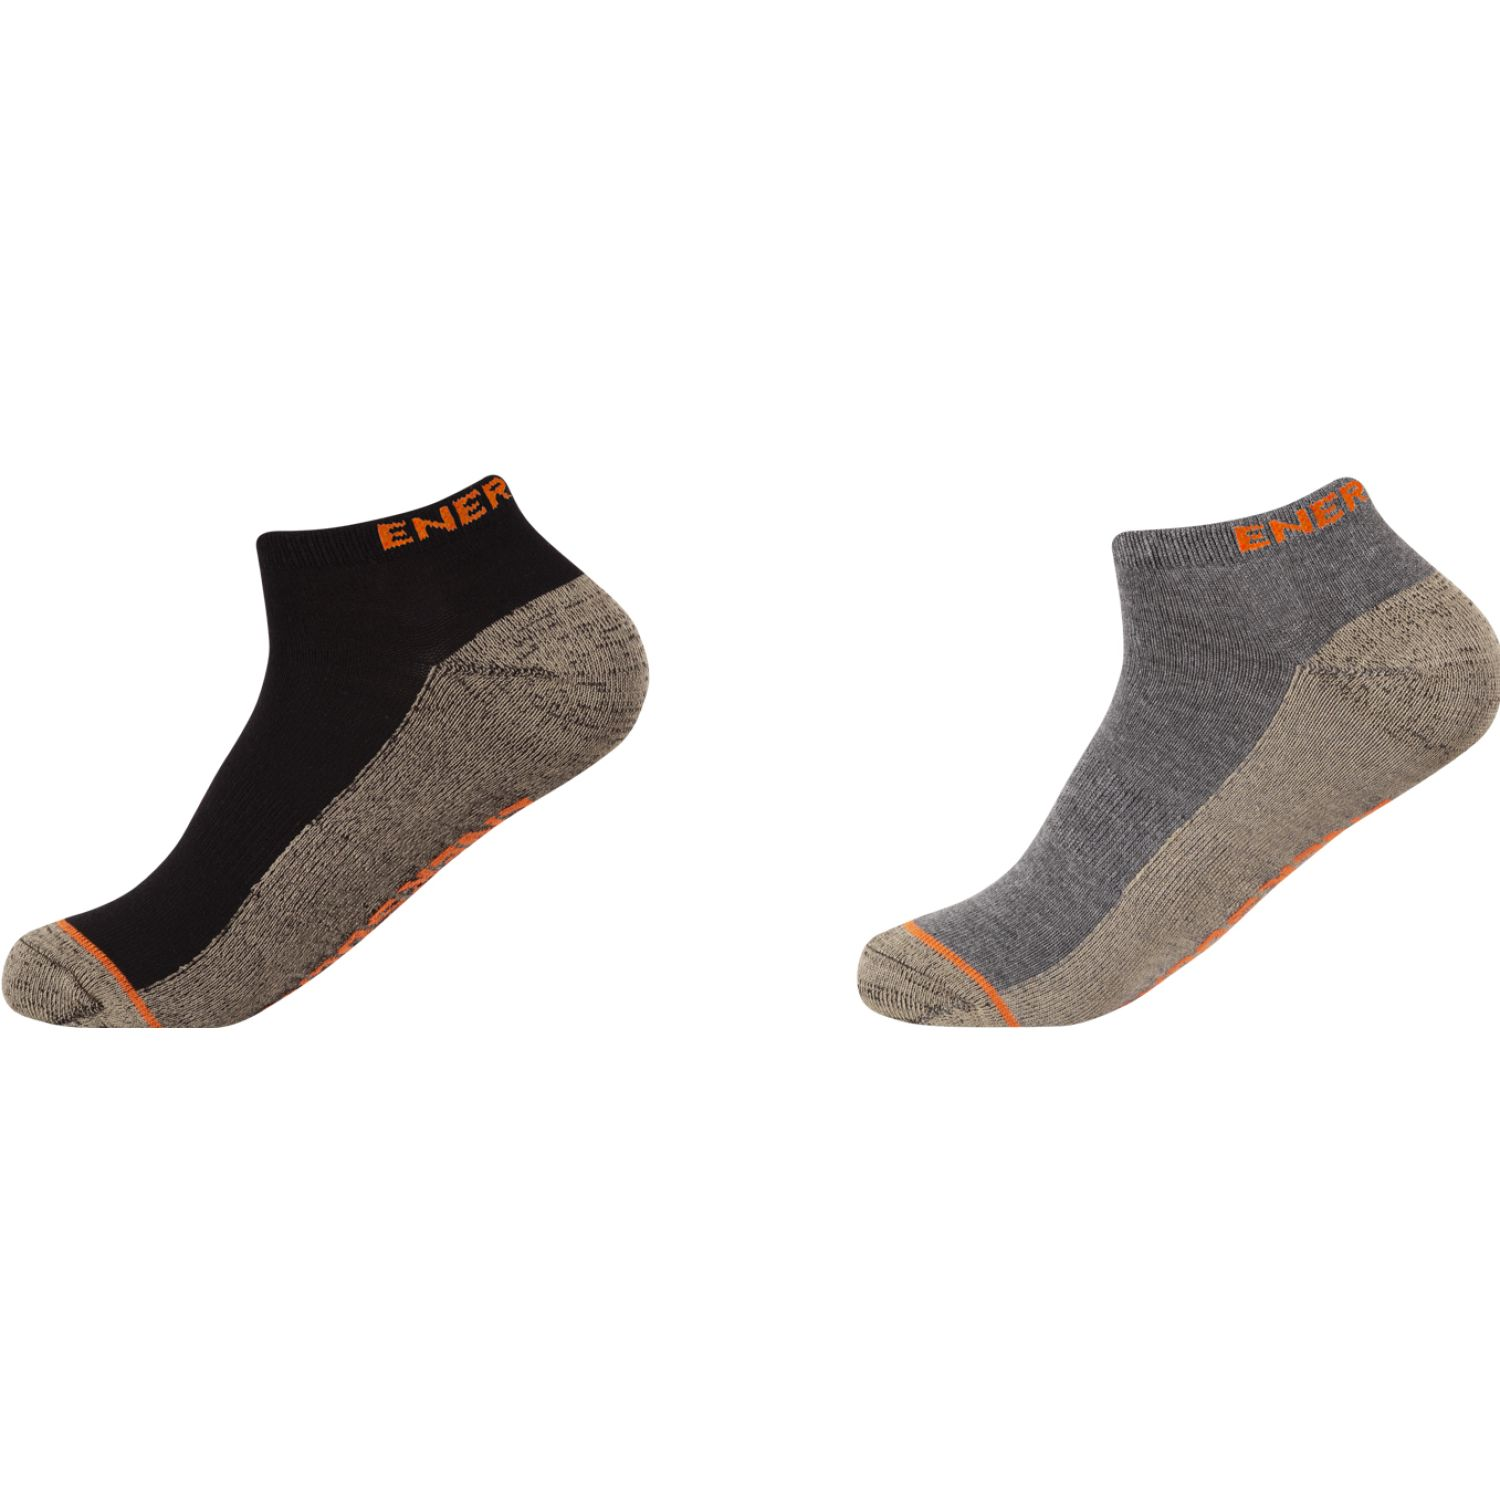 ENERSOCKS Pack 2 Calcetines Ped Bamboo-Cobre Gris / gris Calcetines